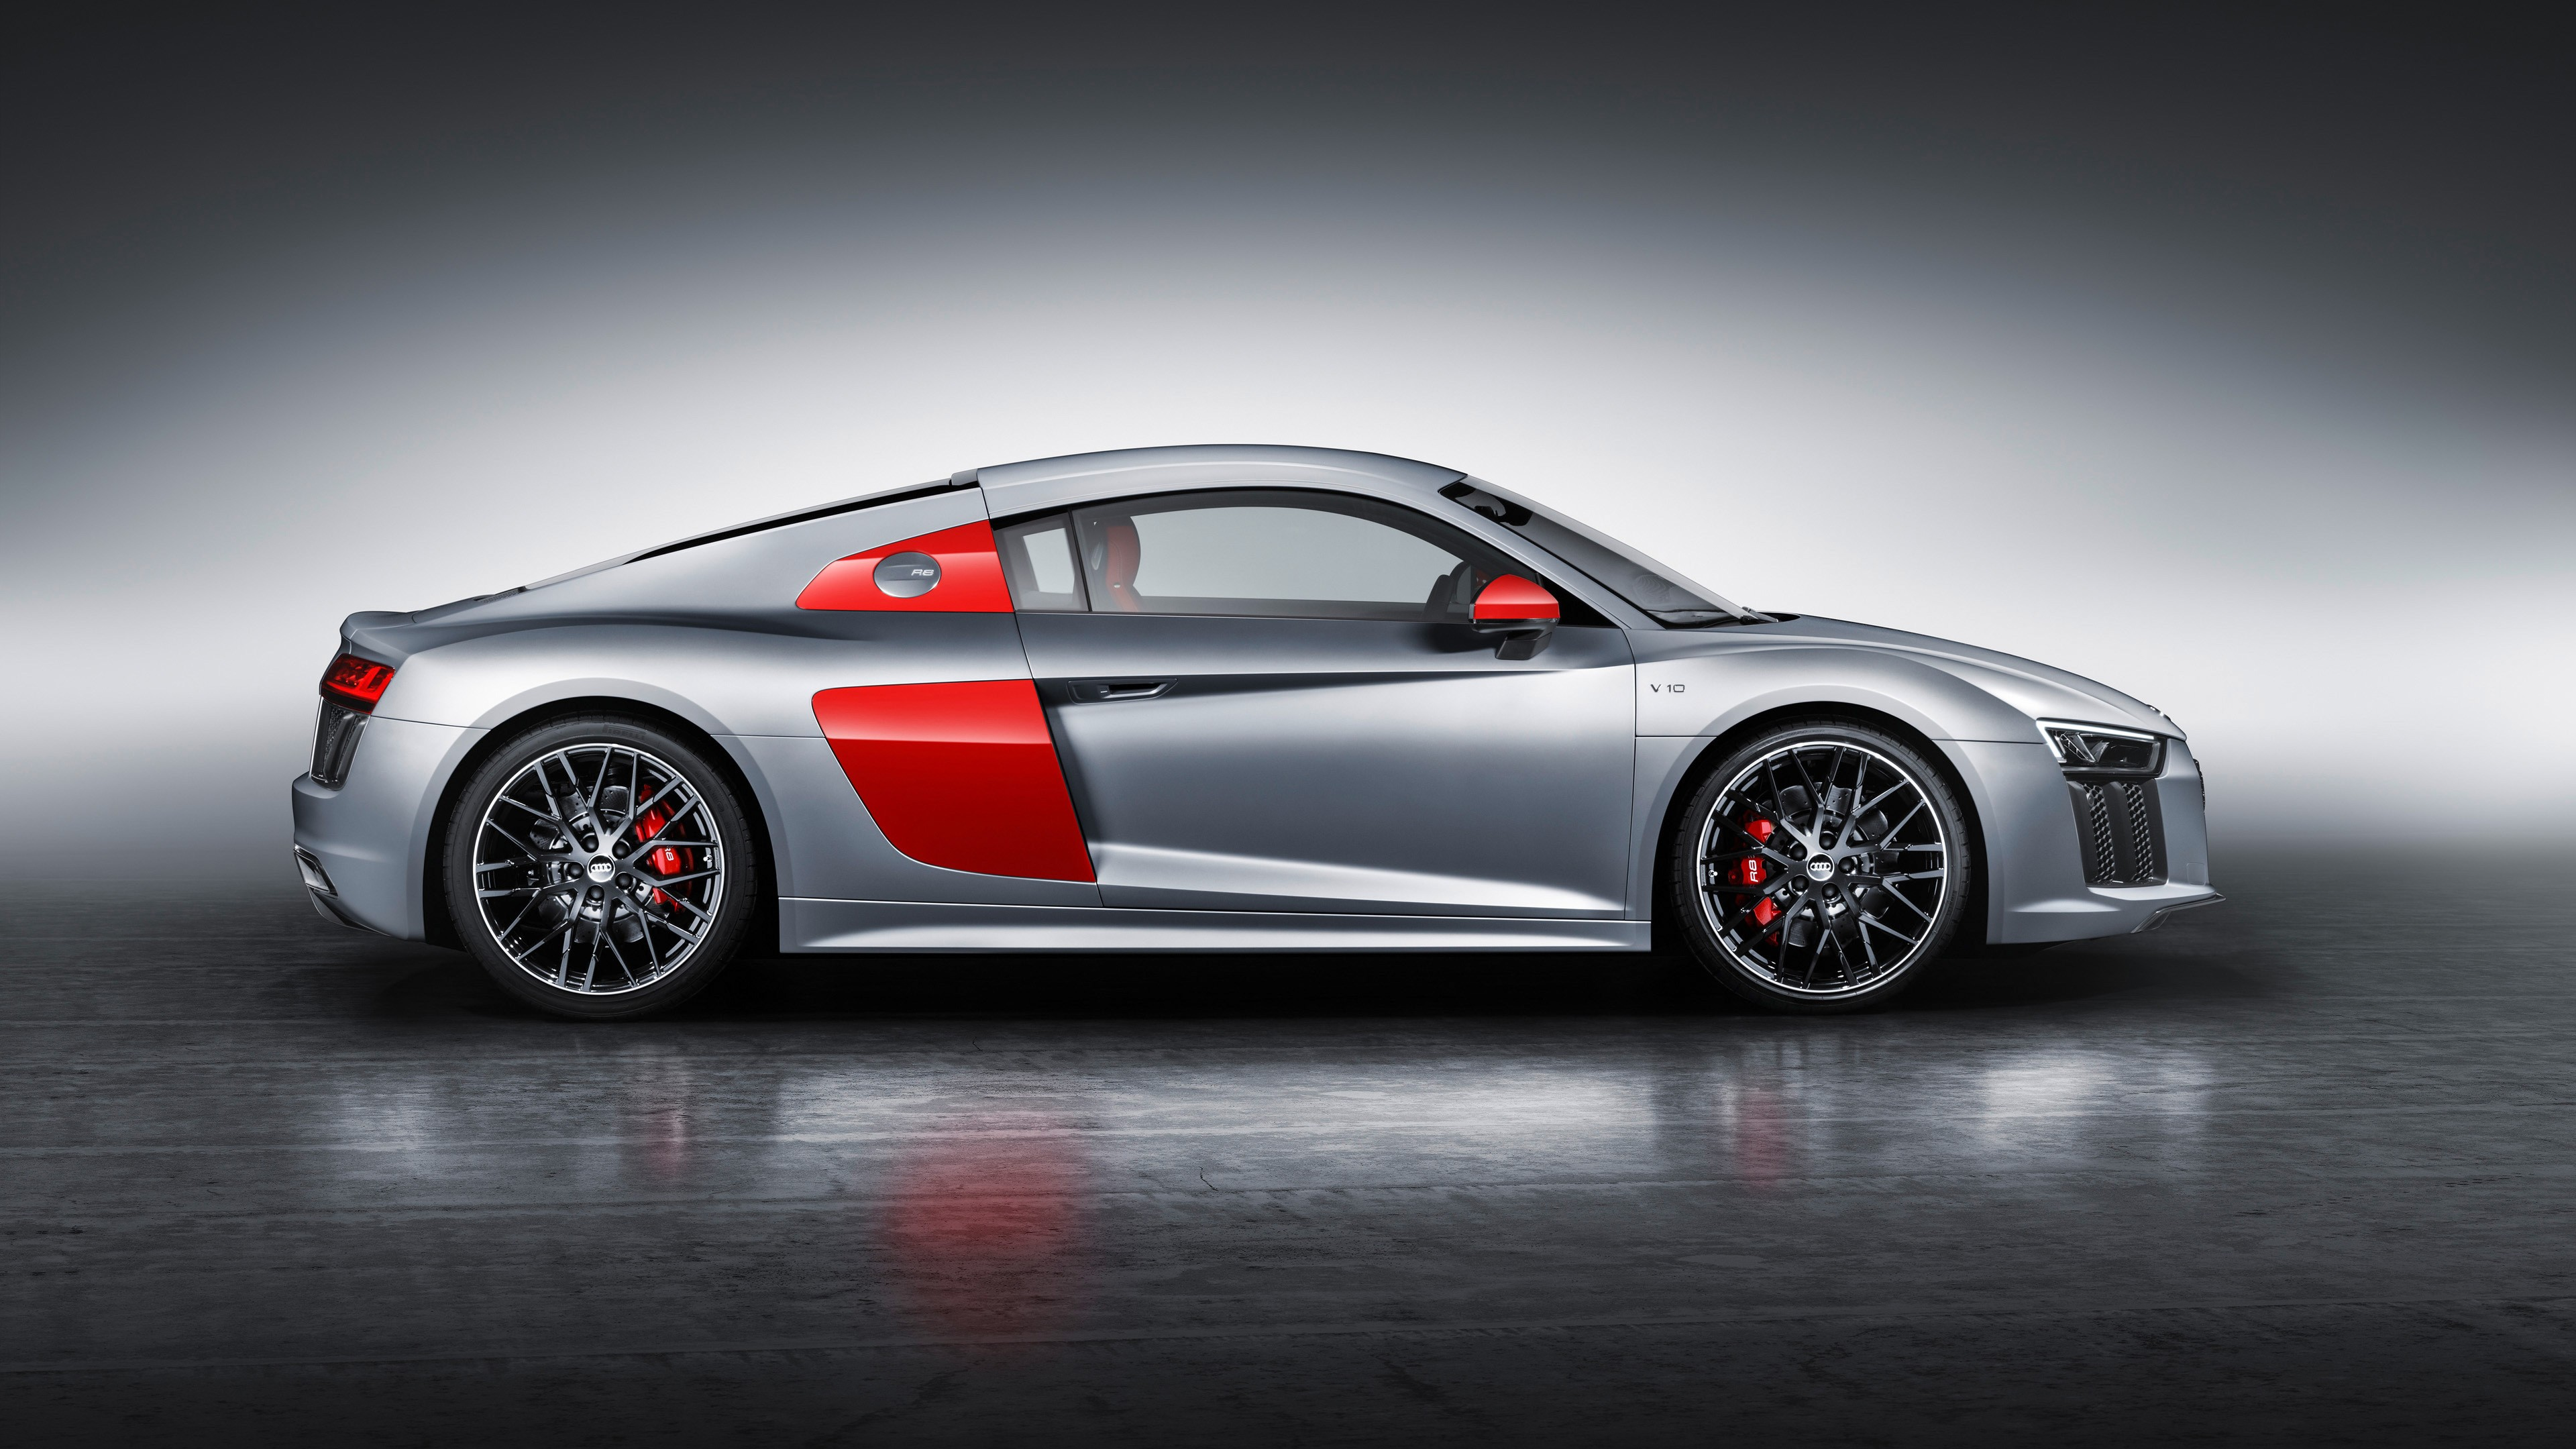 2018 Audi R8 Coupe Sport Edition 3 Wallpaper | HD Car ...